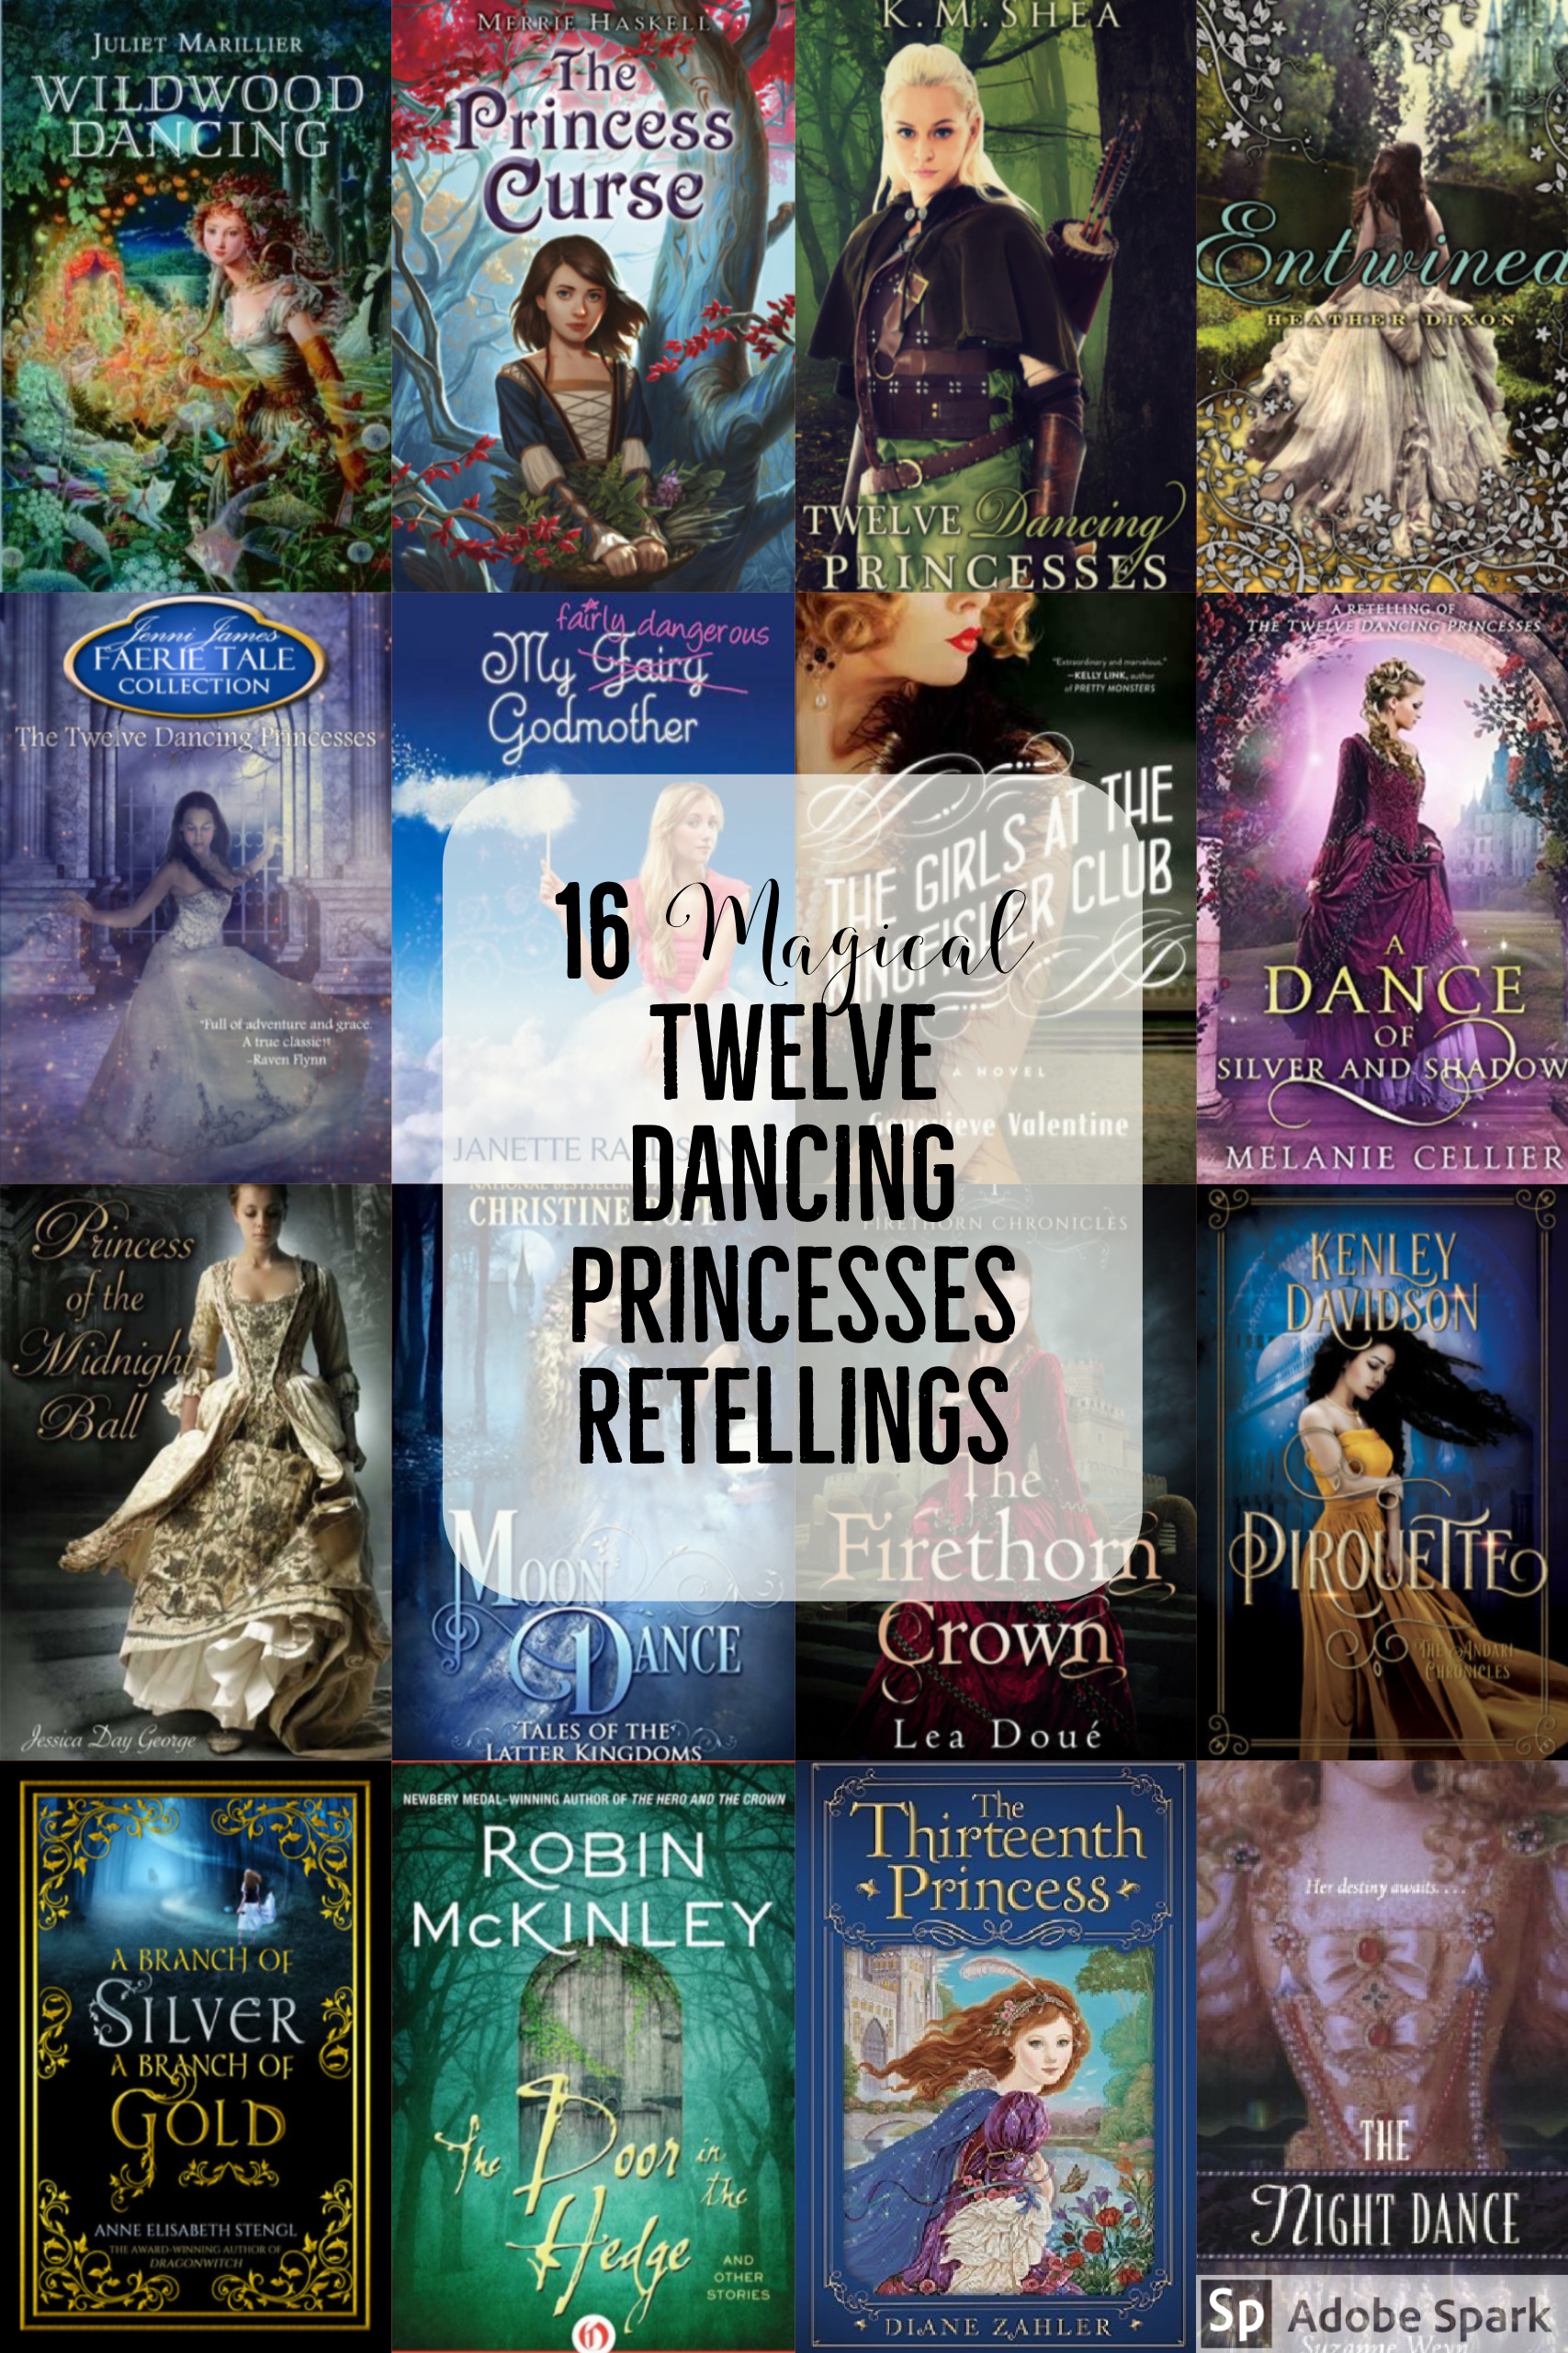 Wildwood Dancing Pdf